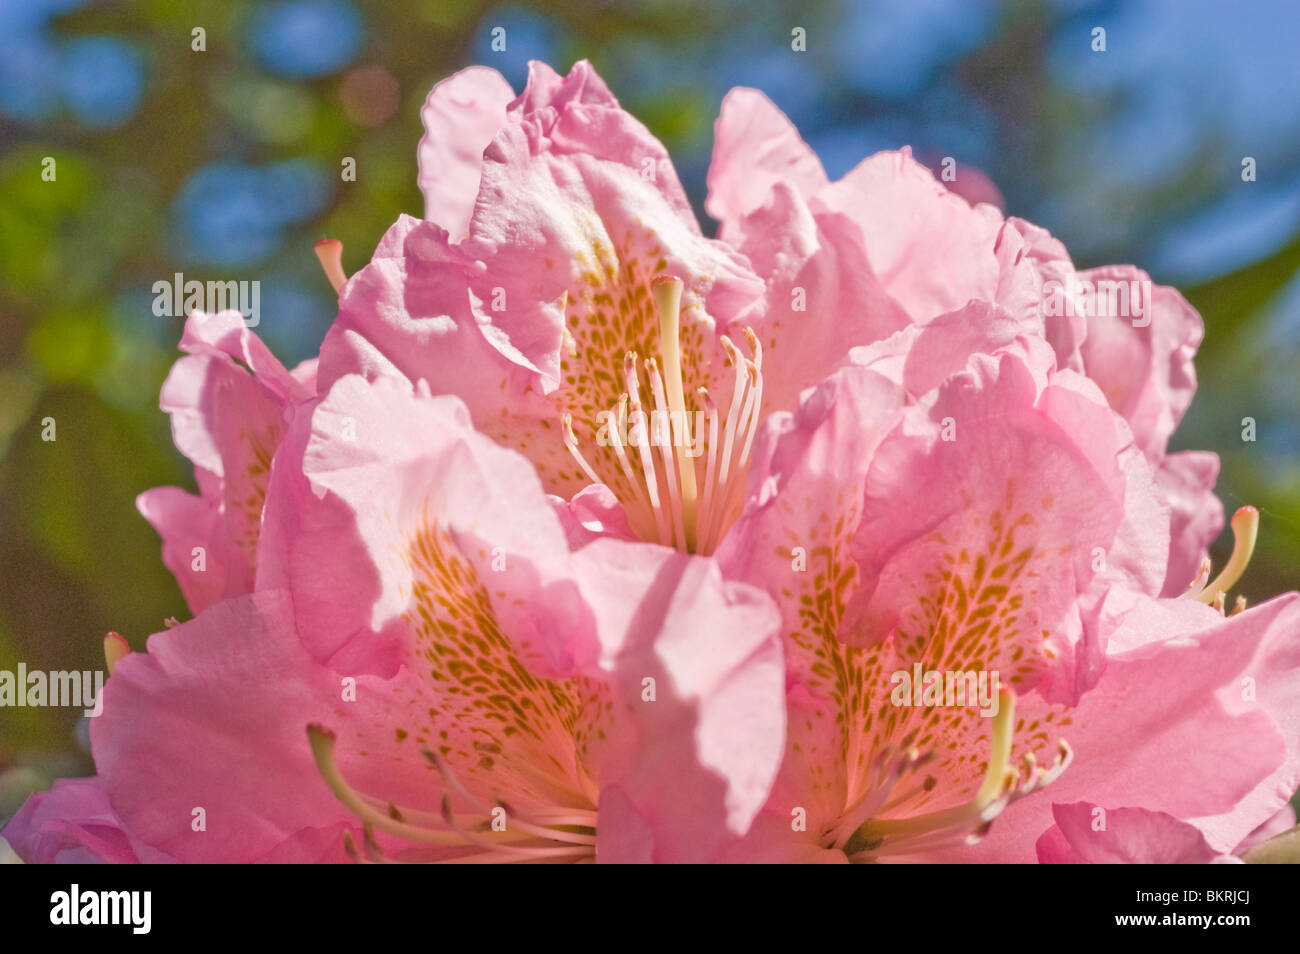 Pink flowers of rhododendron - Stock Image